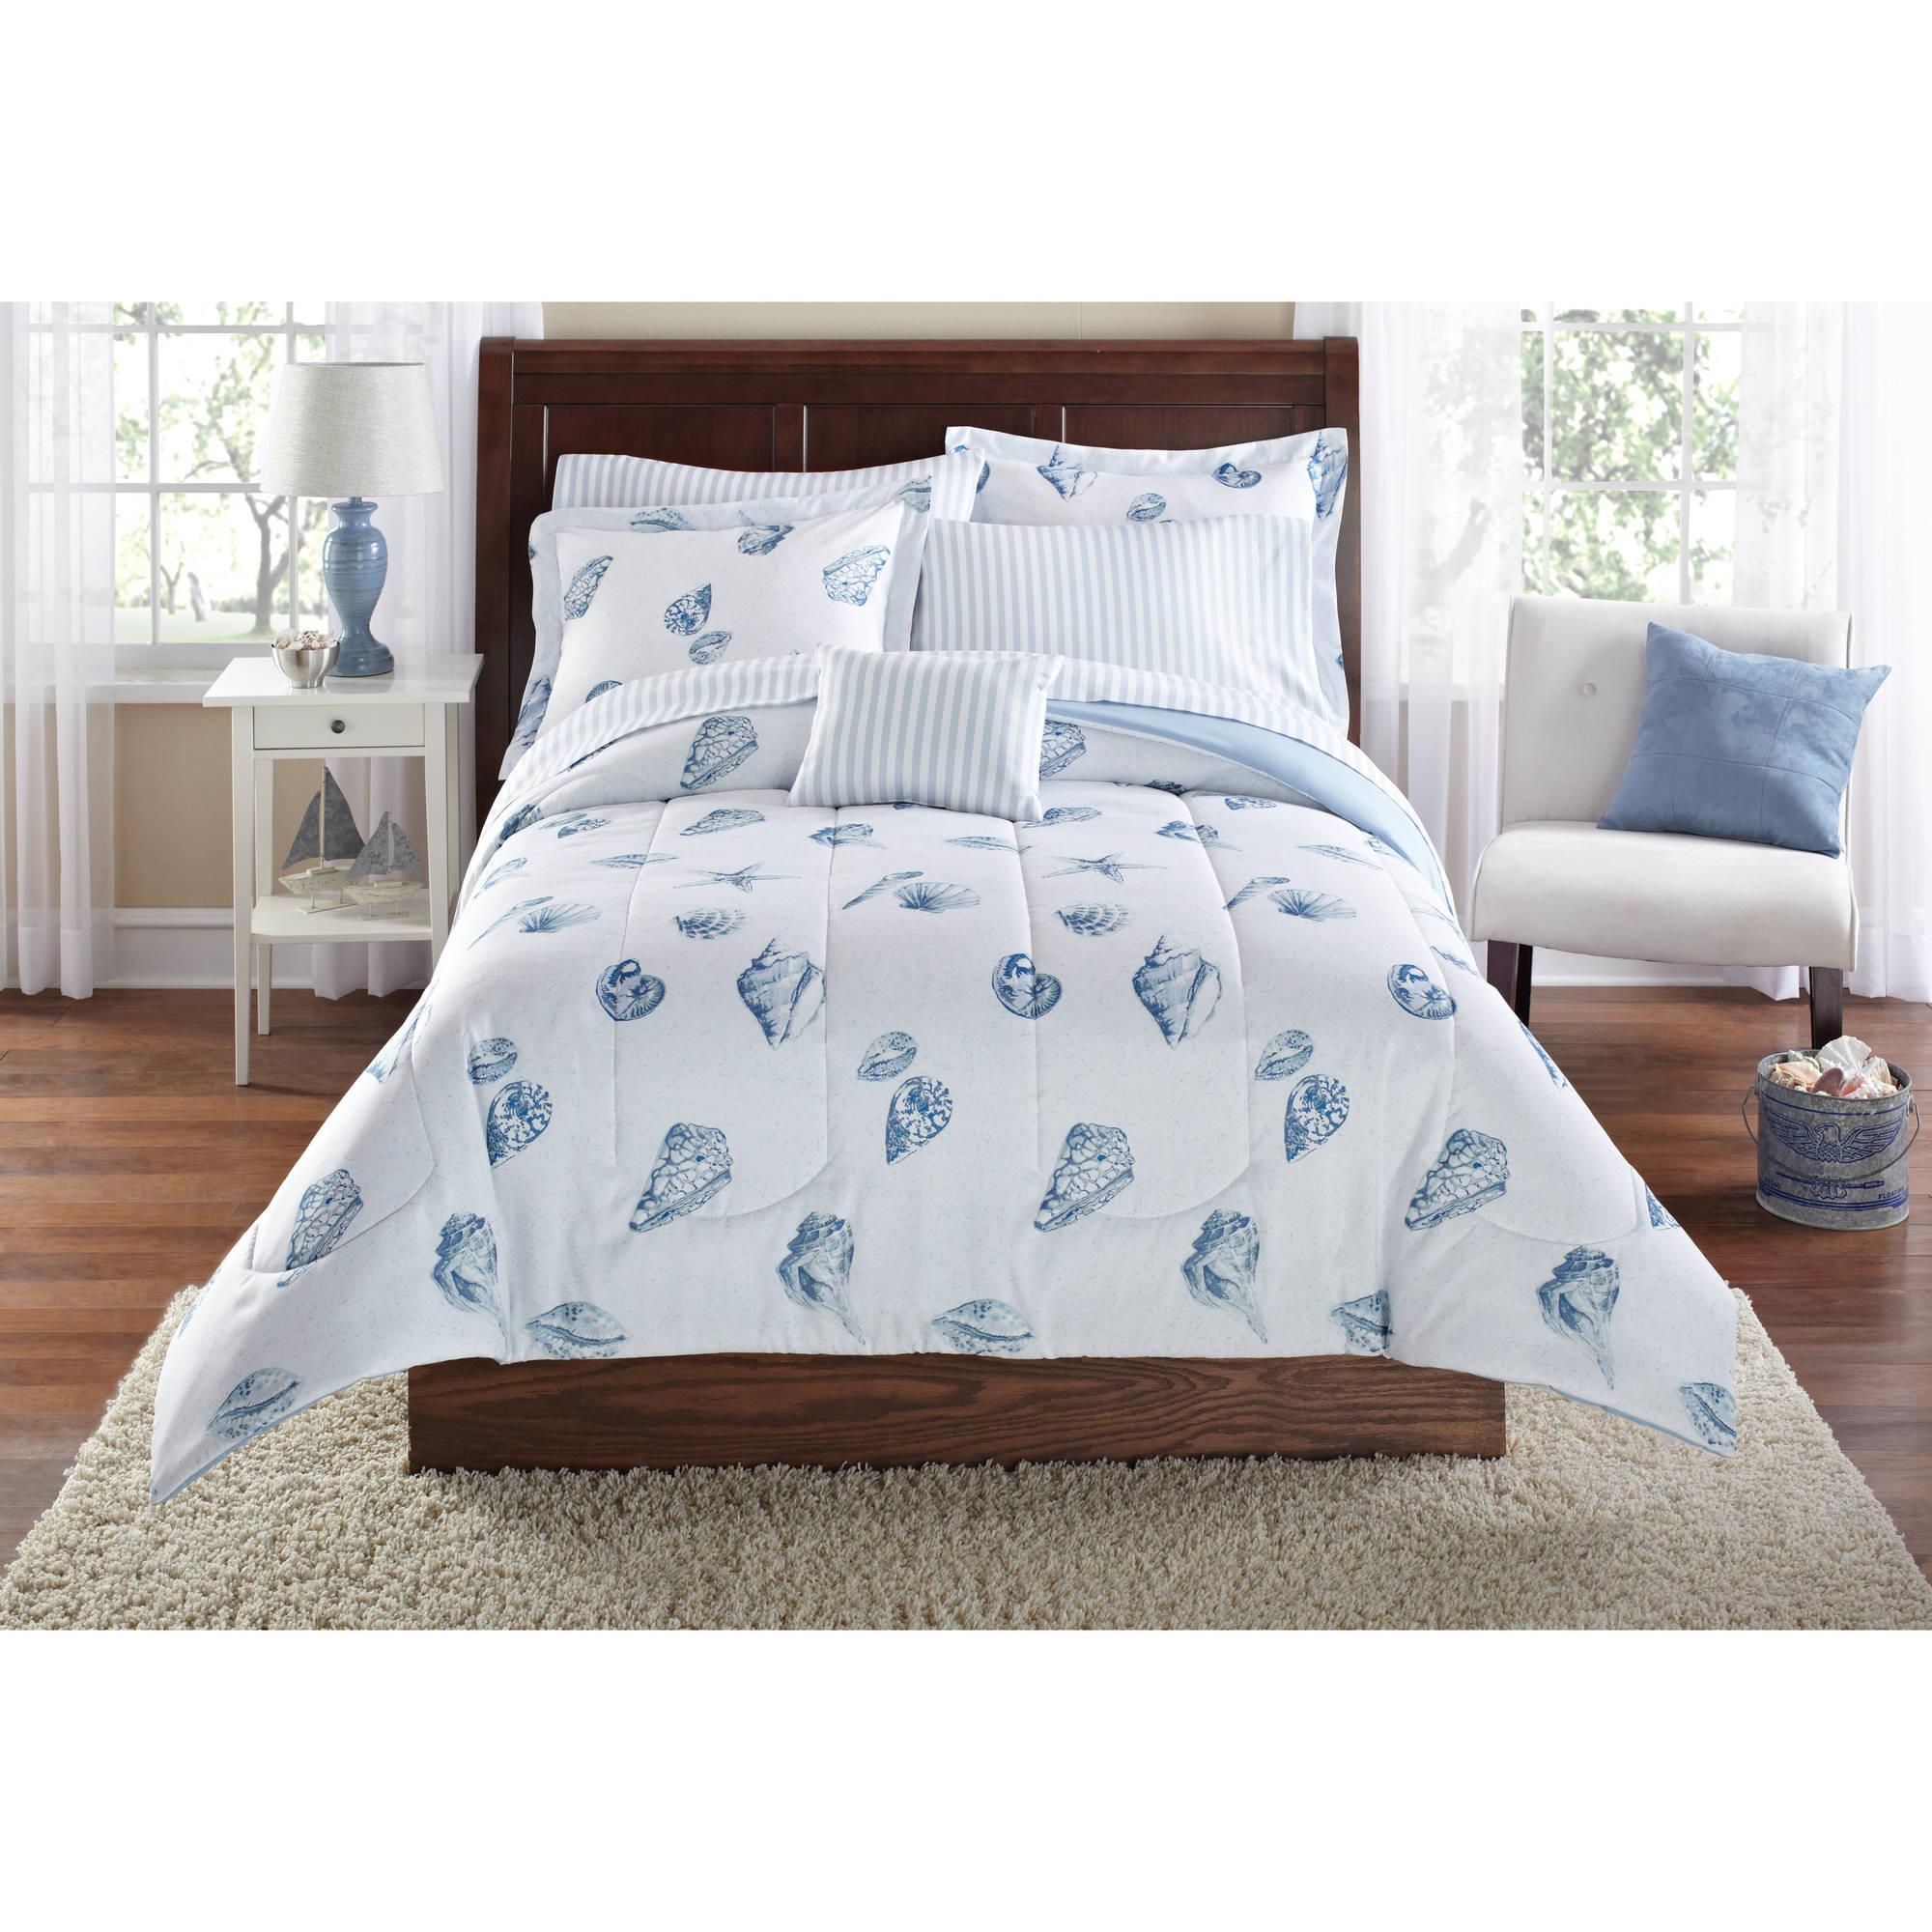 Mainstays Seashells Bed in a Bag Coordinated Bedding Set